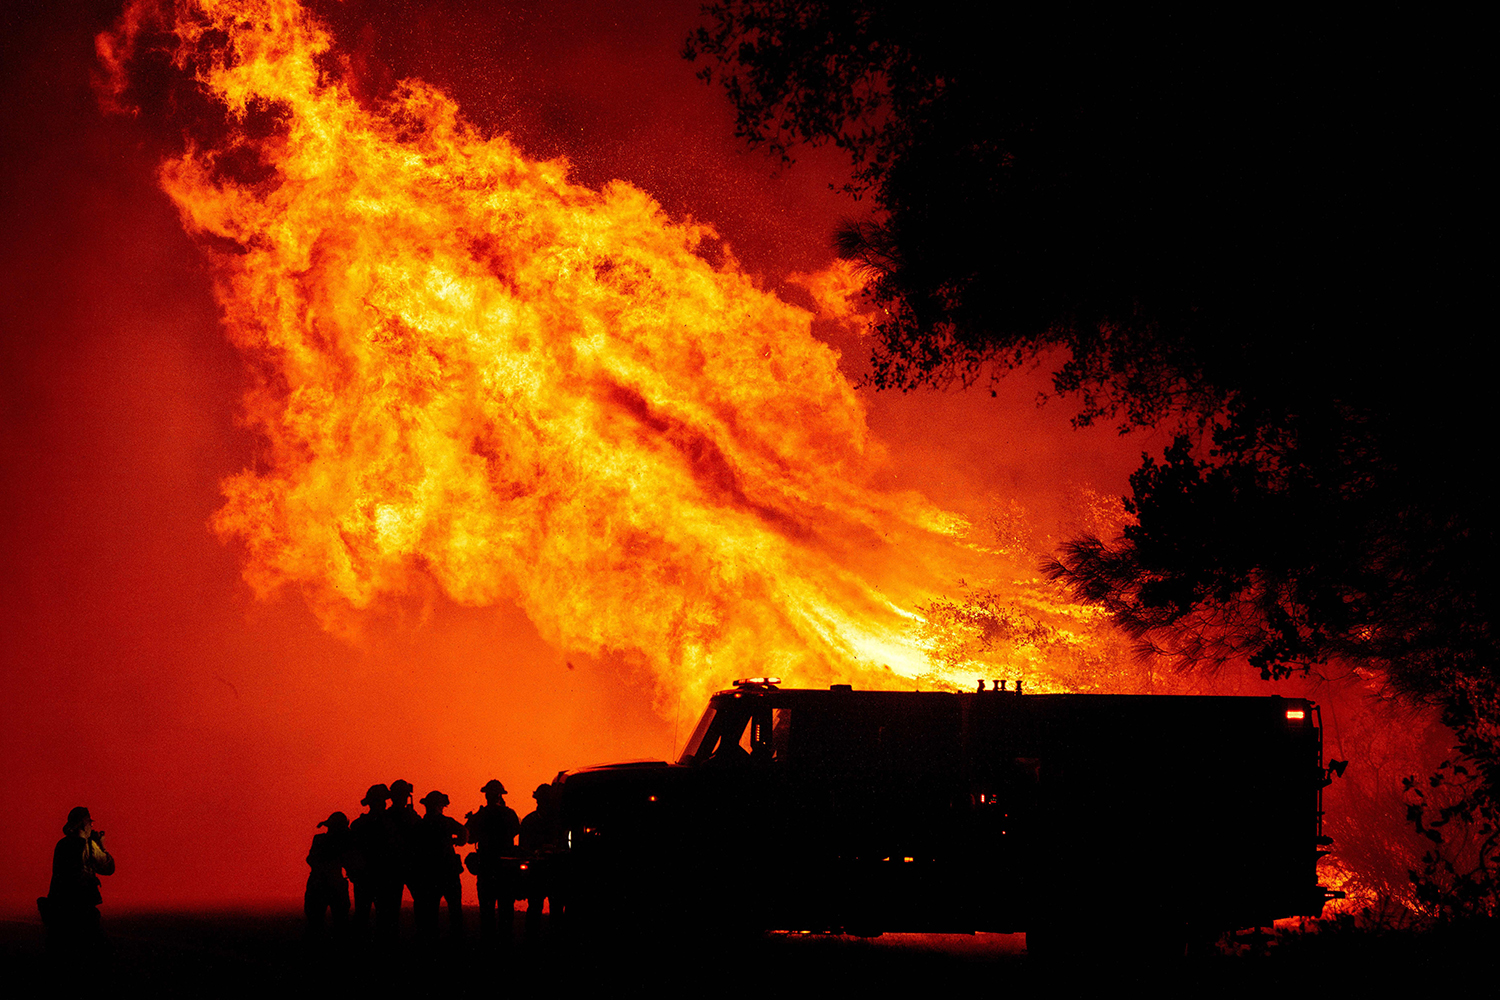 Butte County firefighters watch as flames tower over their truck during the Bear Fire in Oroville, California, on Sept. 9. JOSH EDELSON/AFP via Getty Images